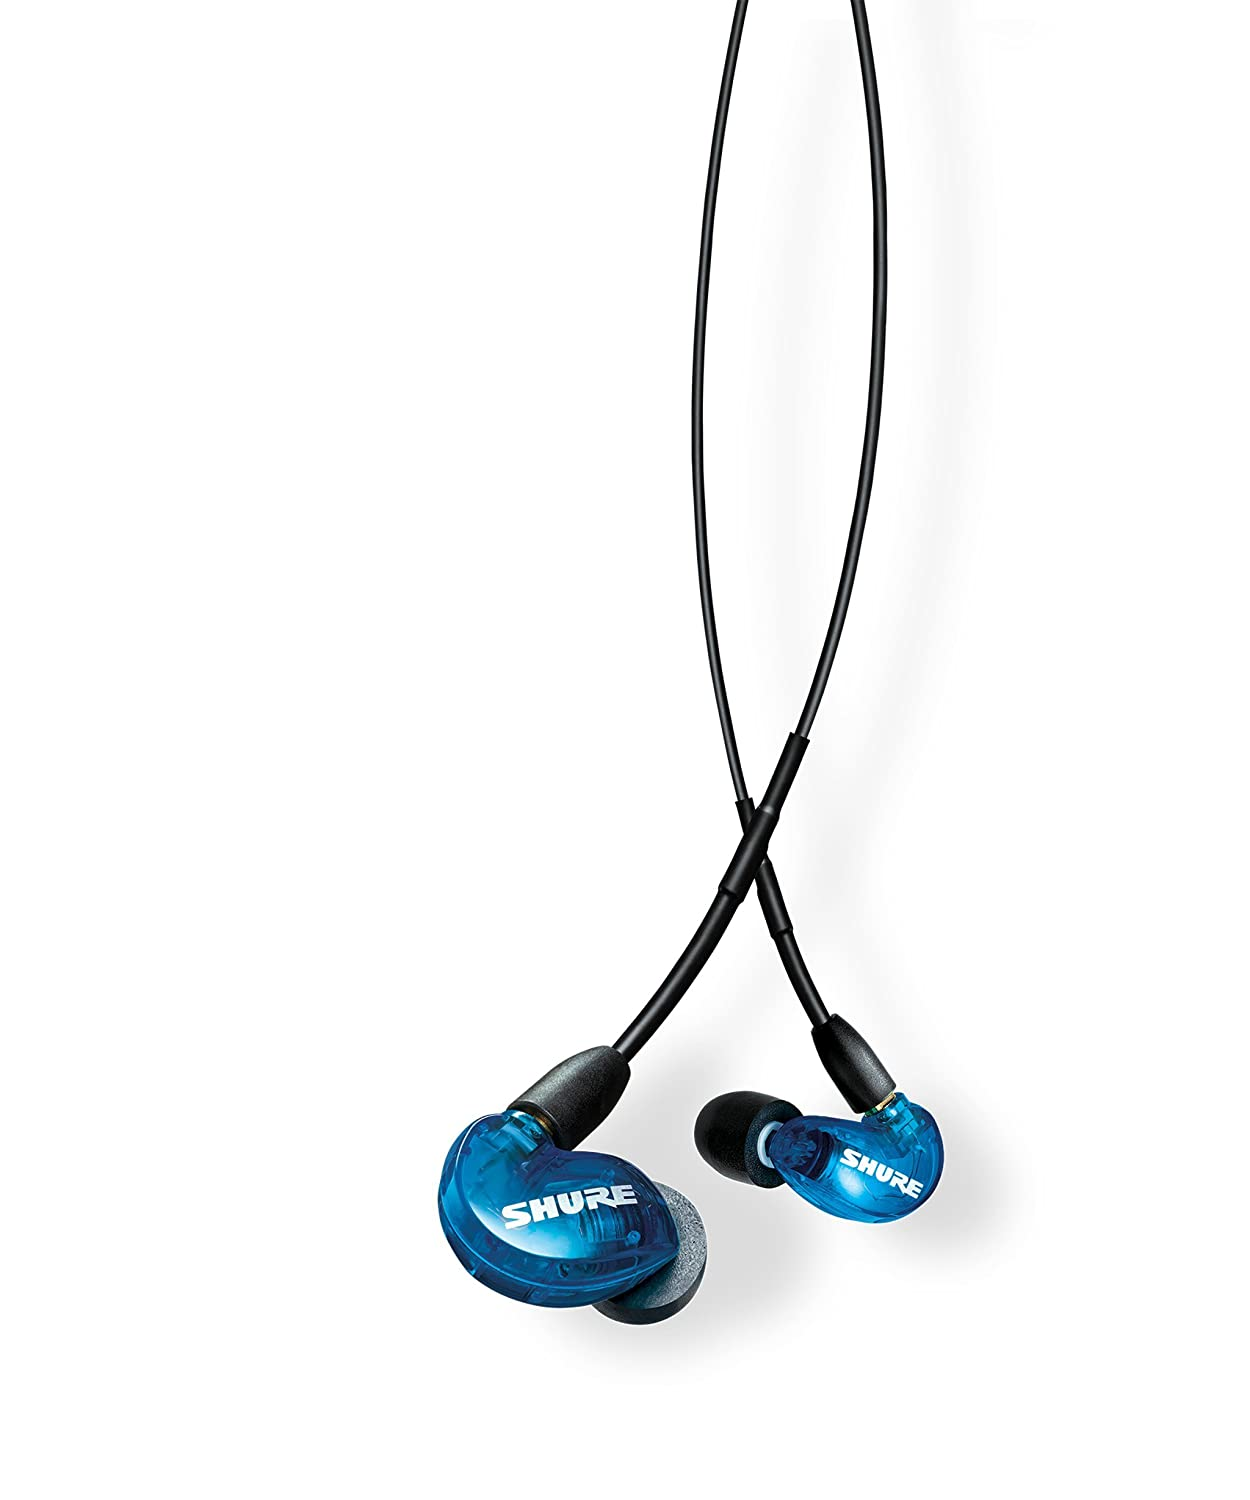 Shure SE215SPE Special Edition Sound Isolating Earphones, Blue/Gray Shure Incorporated